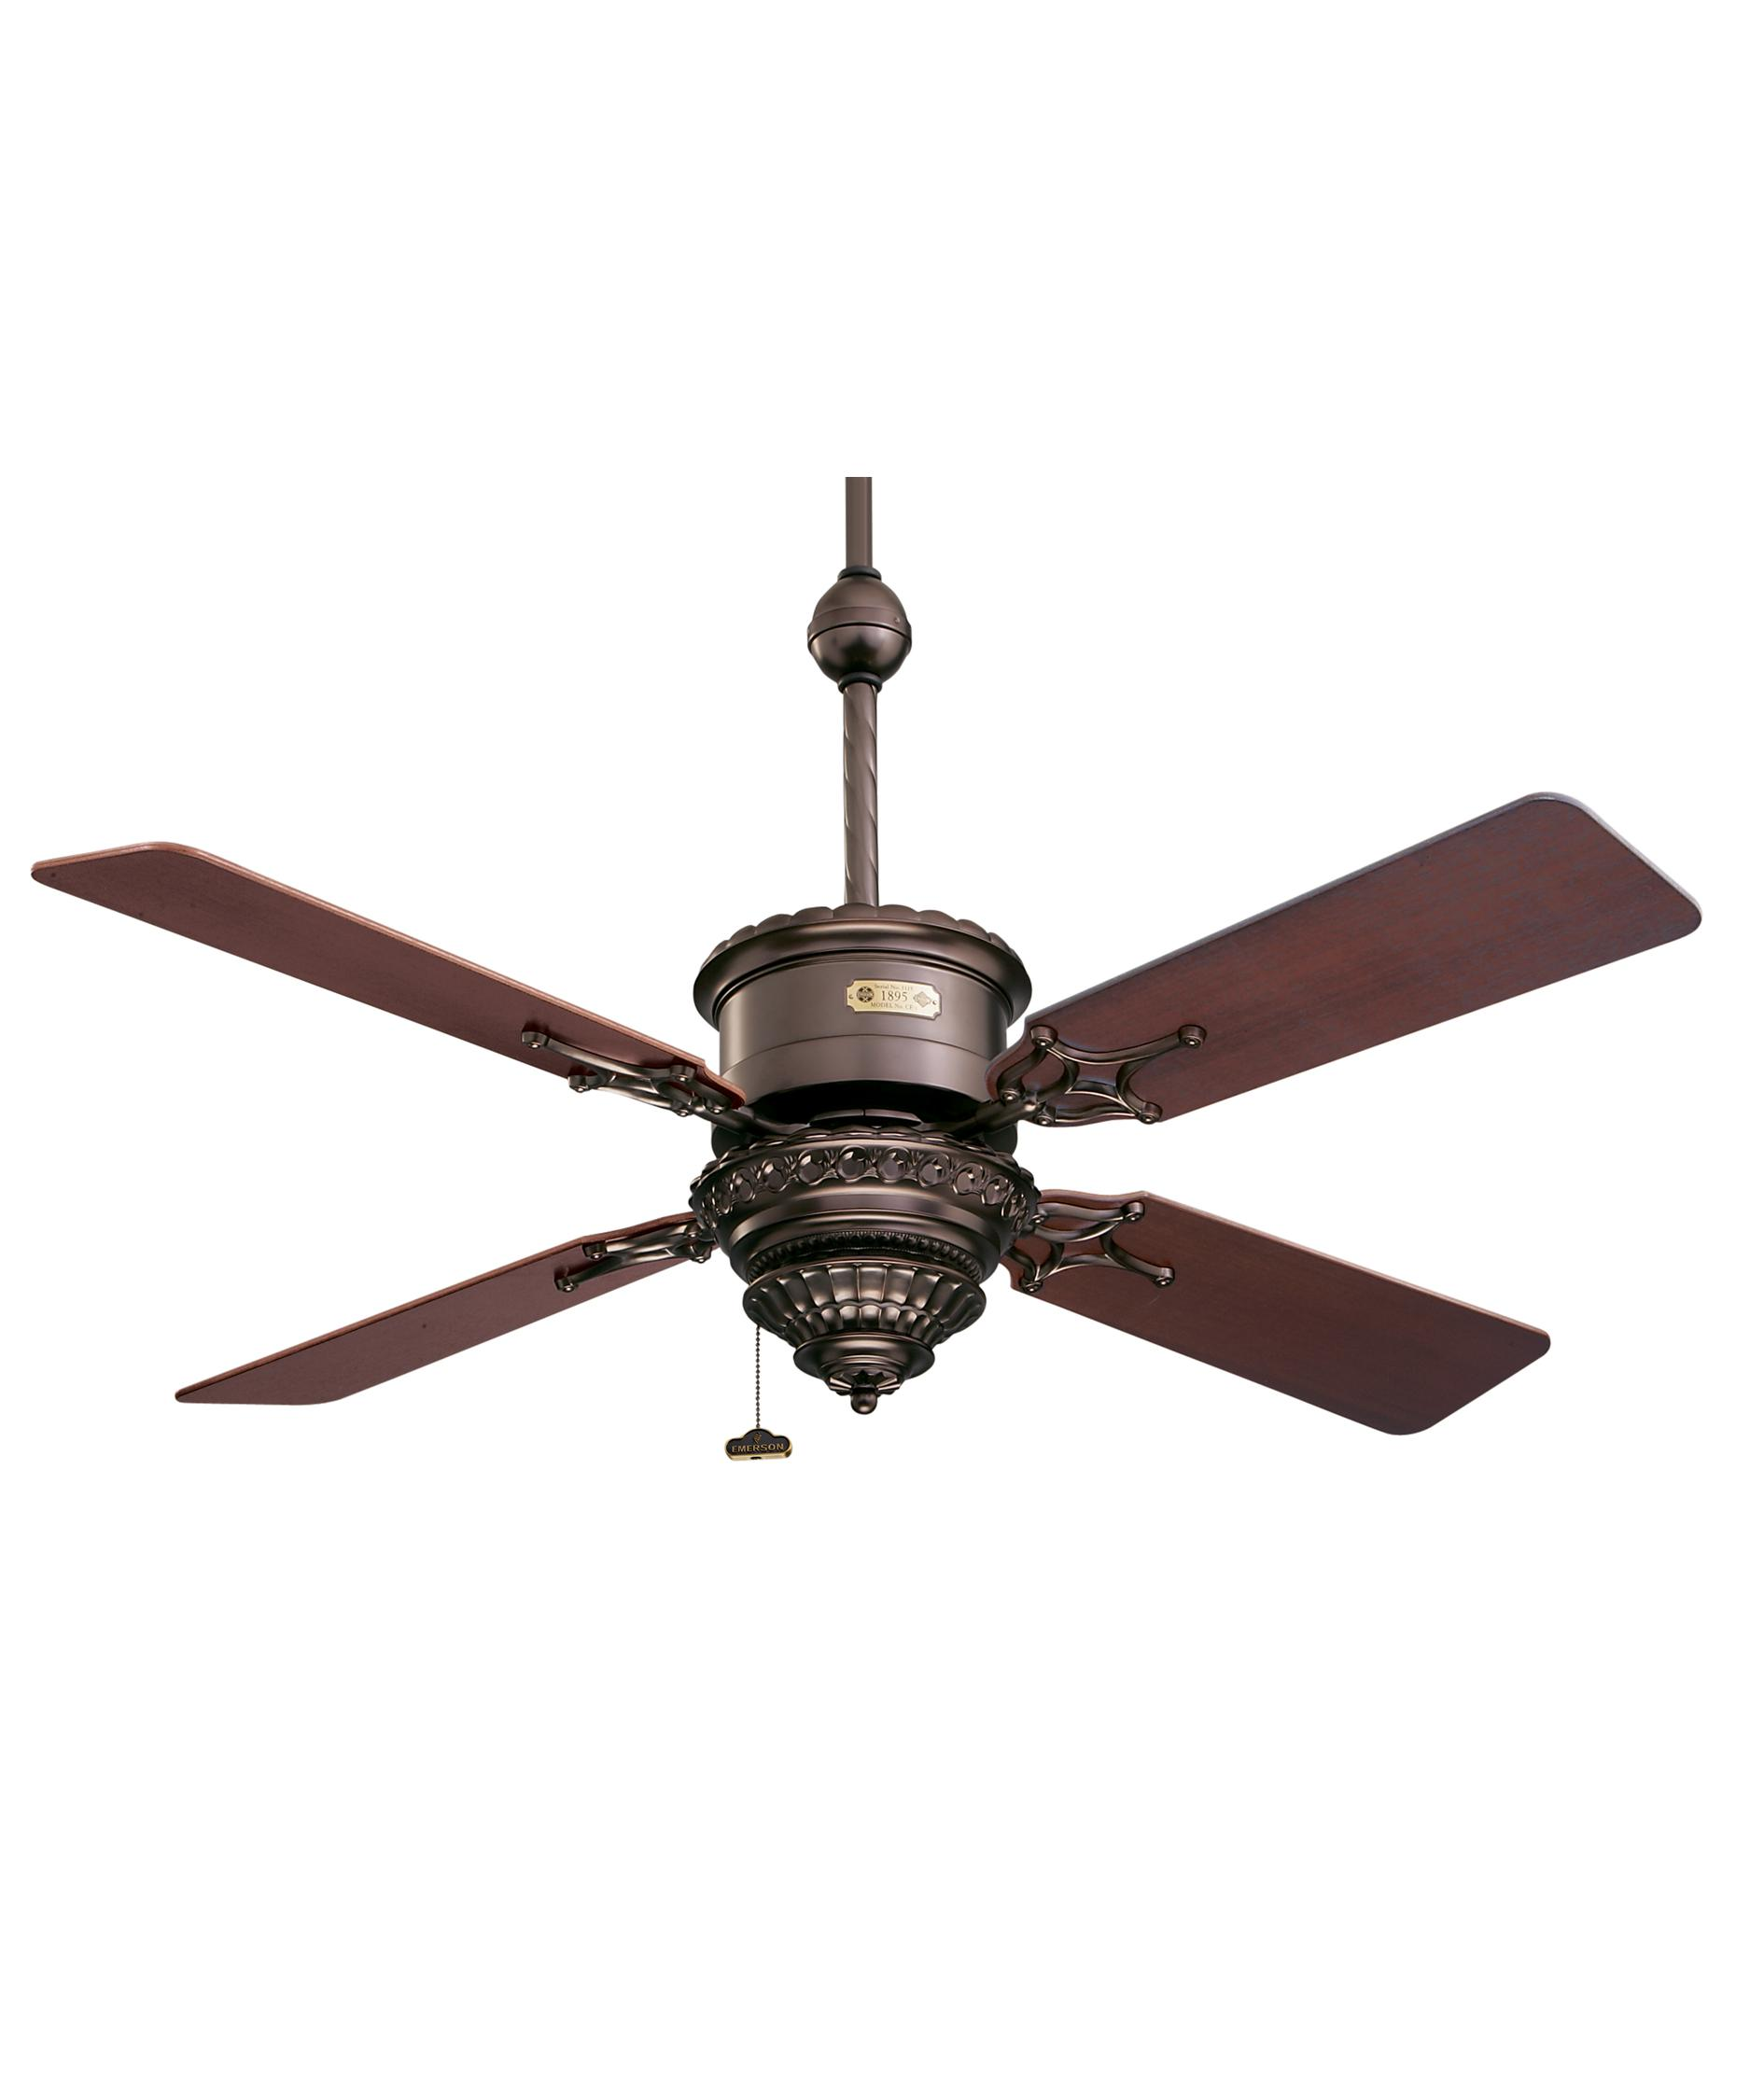 Ceiling fan light kit pictures ideas lighting models - Emerson Cf1 Cornerstone Ceiling Fan Capitol Lighting 1 800lighting Com